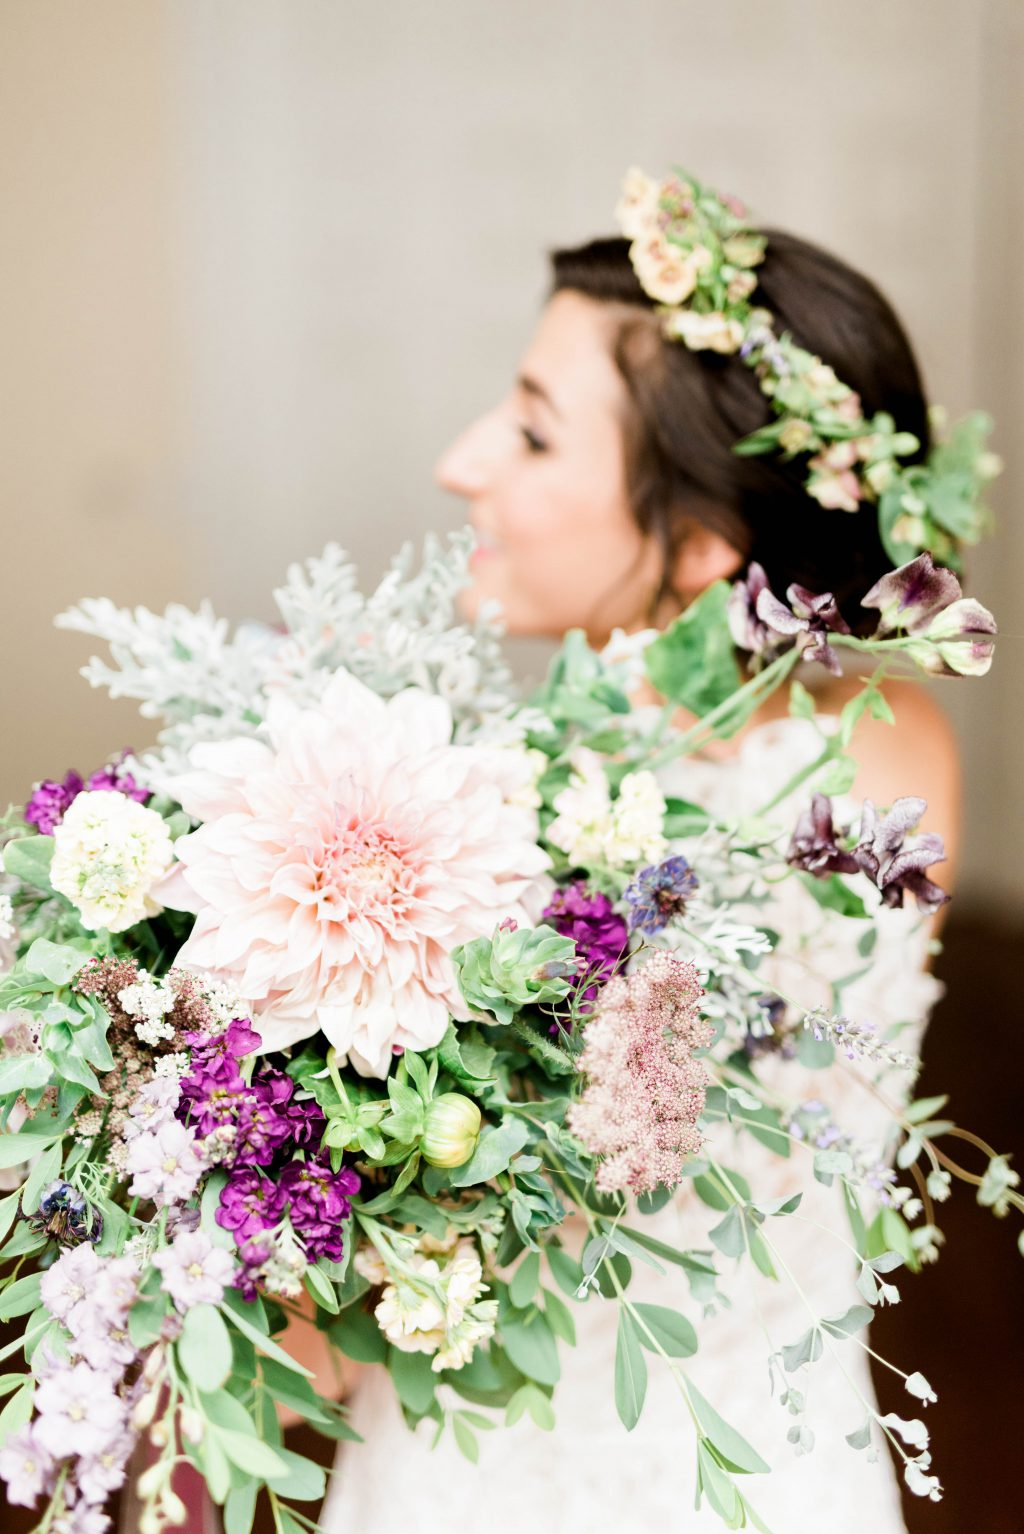 awbury-arboretum-wedding-DIY-boho-summer-haley-richter-photography-052